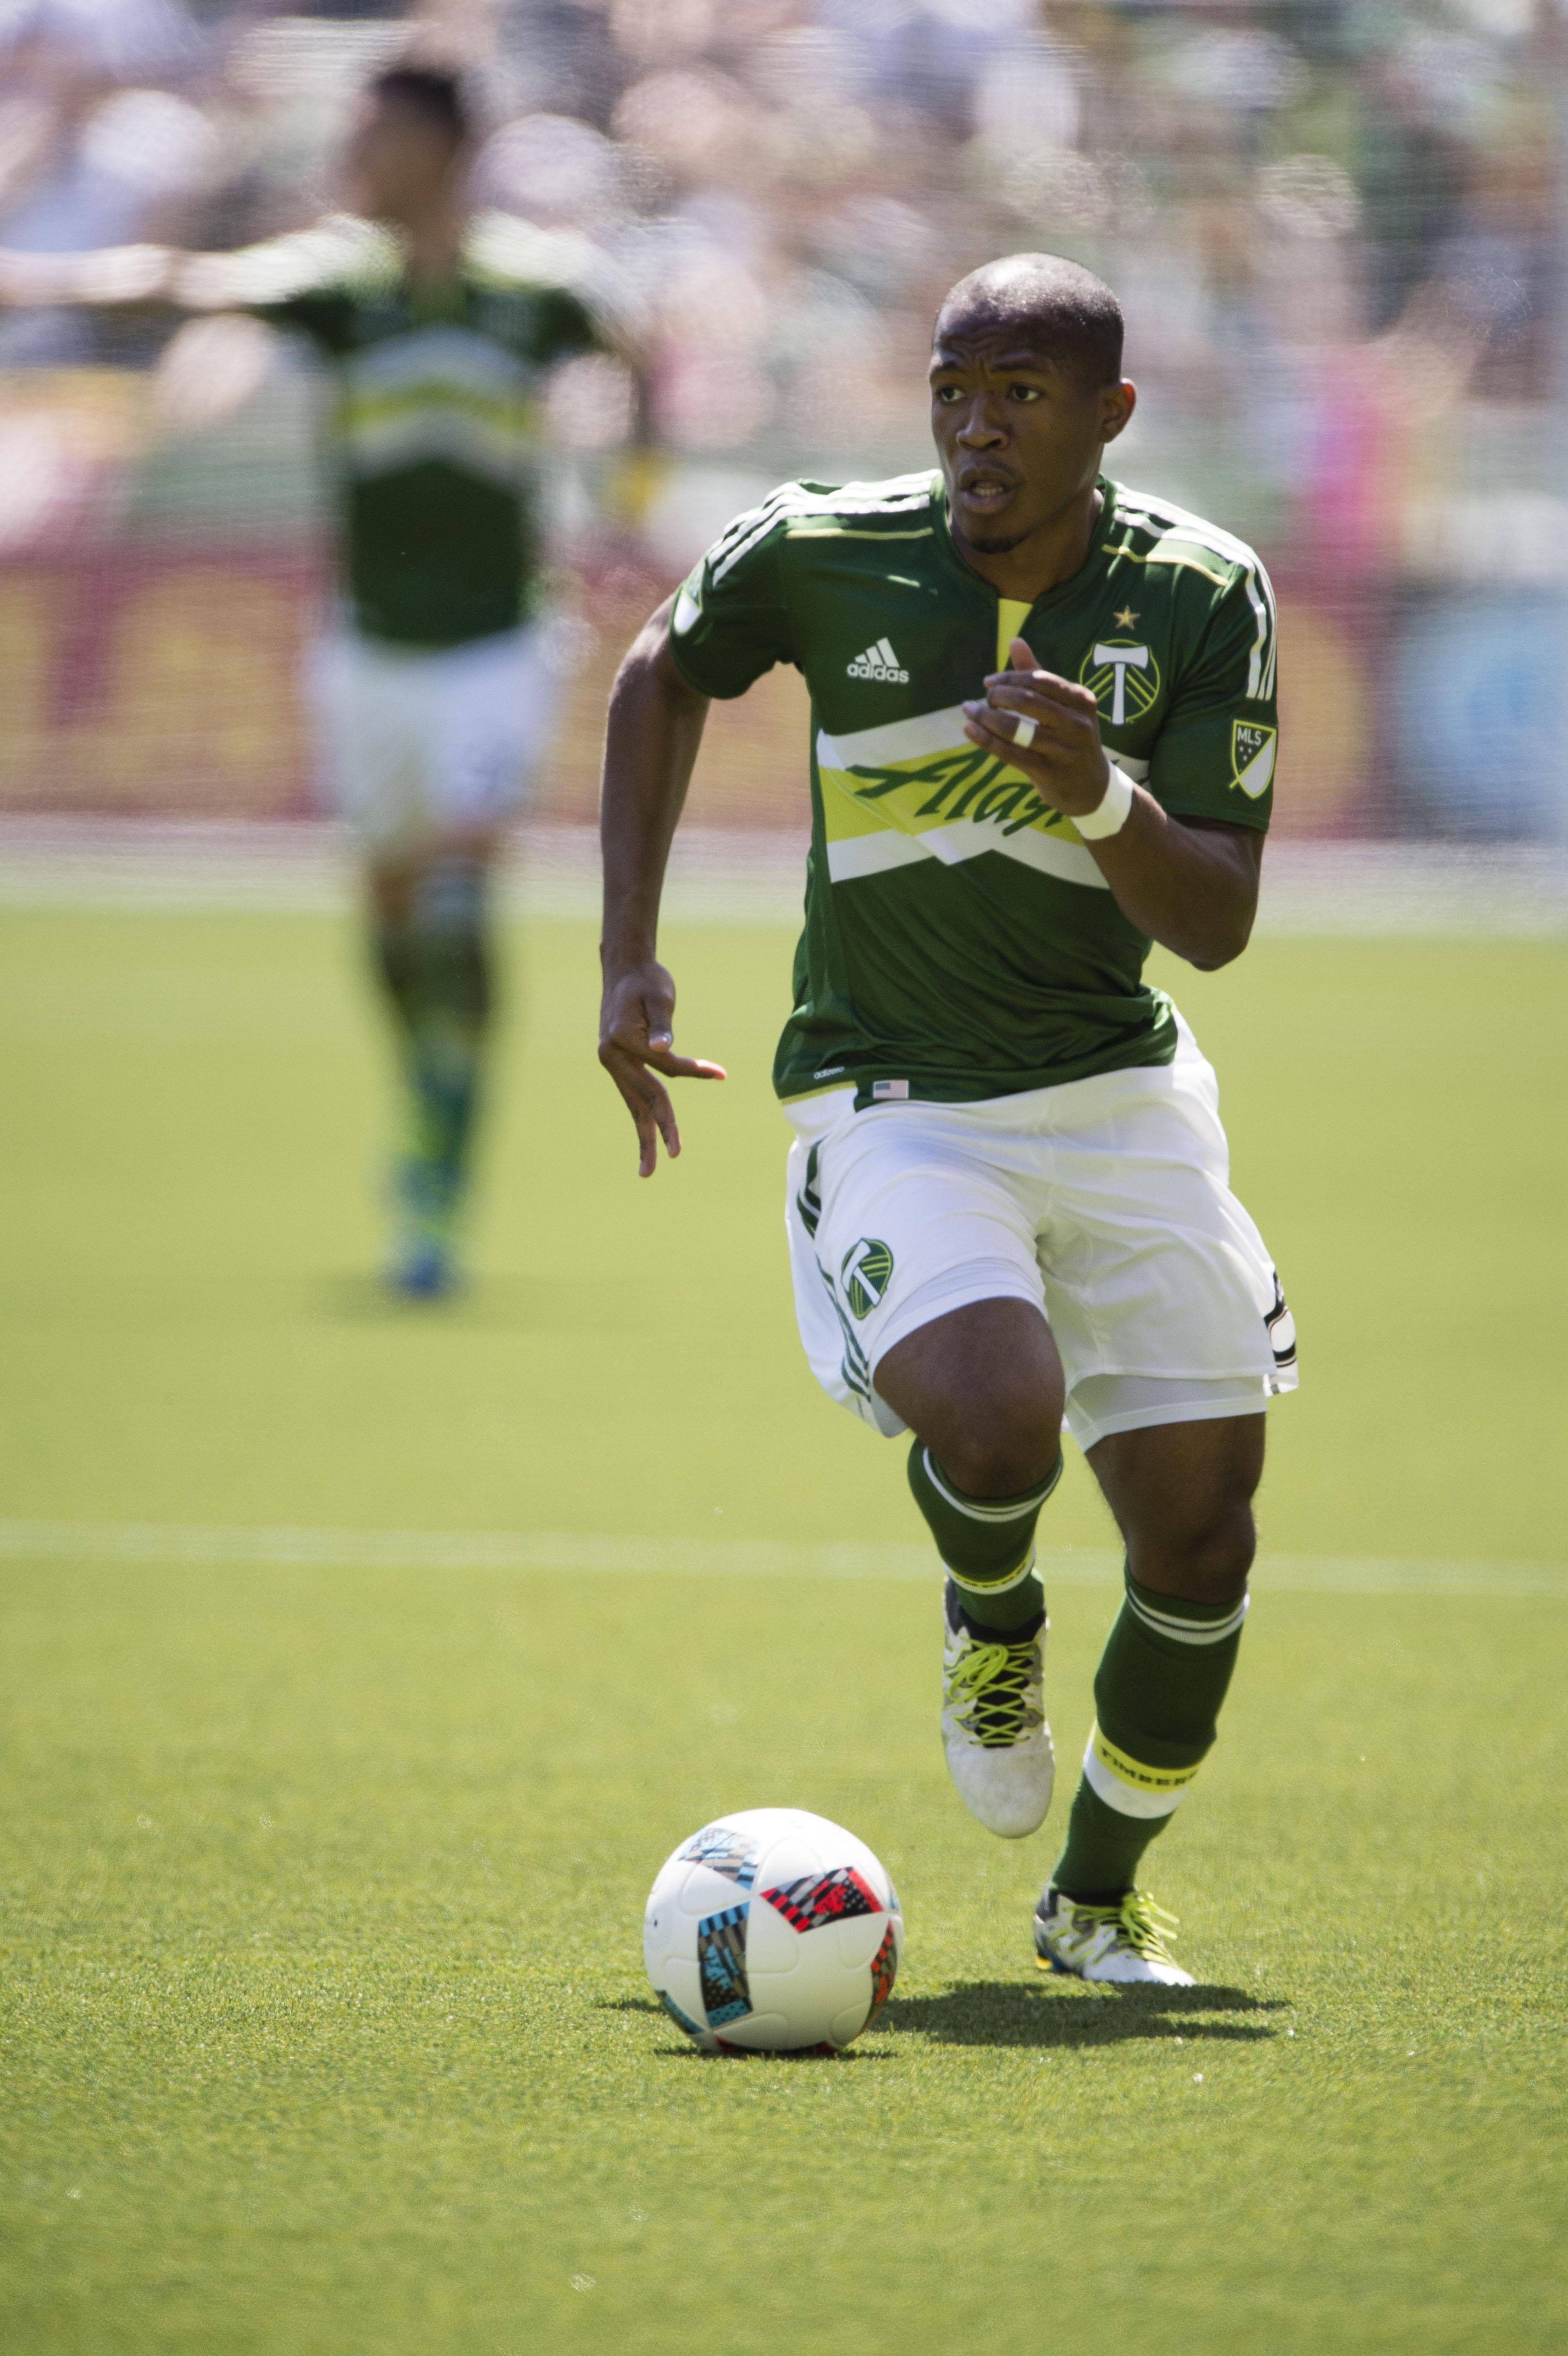 Darlington Nagbe is among the former Zips with the best chance to make the USMNT Copa America final roster.